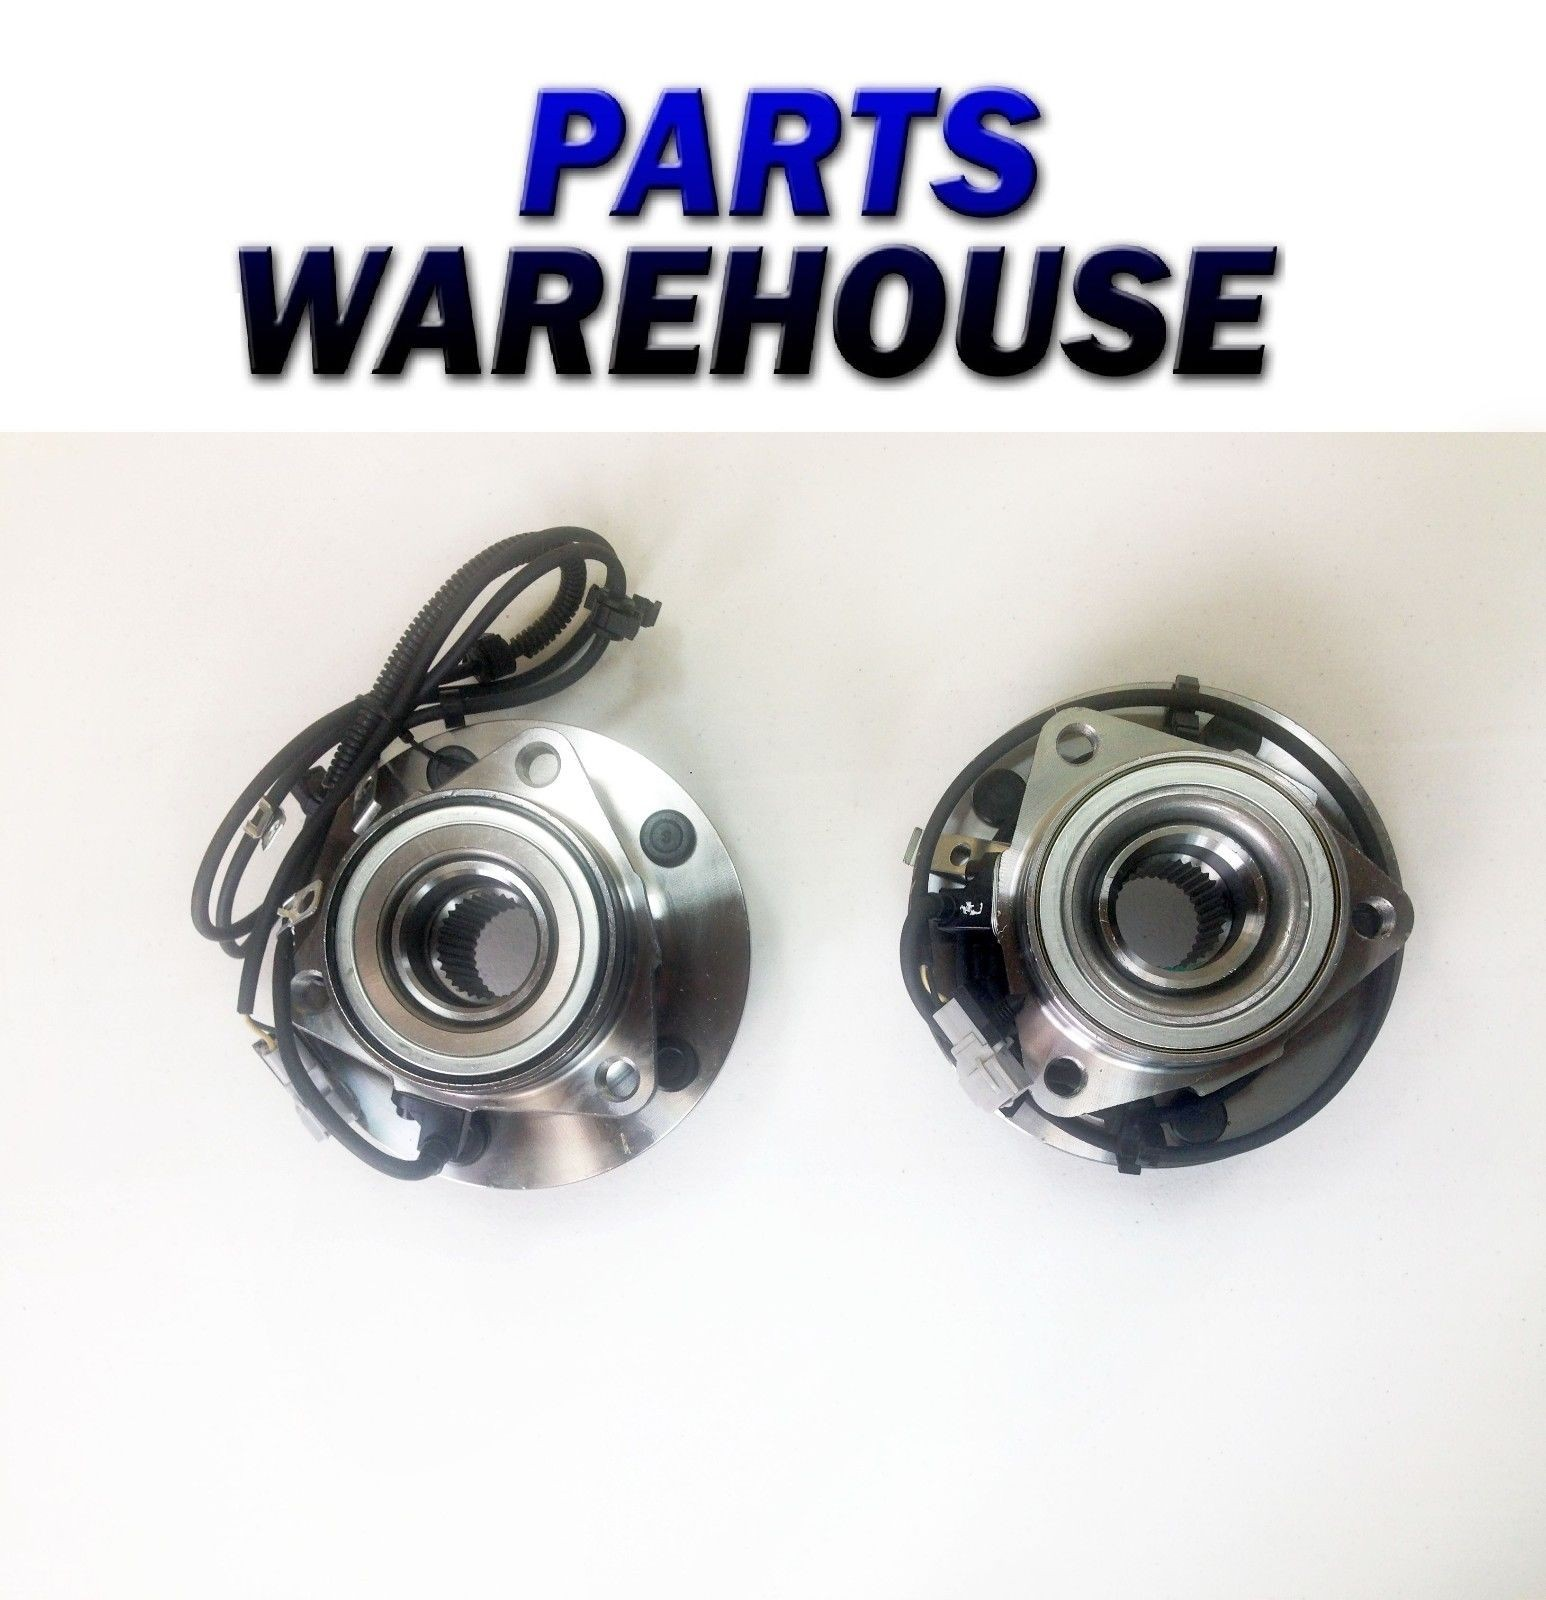 2 Wheel Hubs & Bearings For 97-99 Dodge Ram 1500 4X4 With